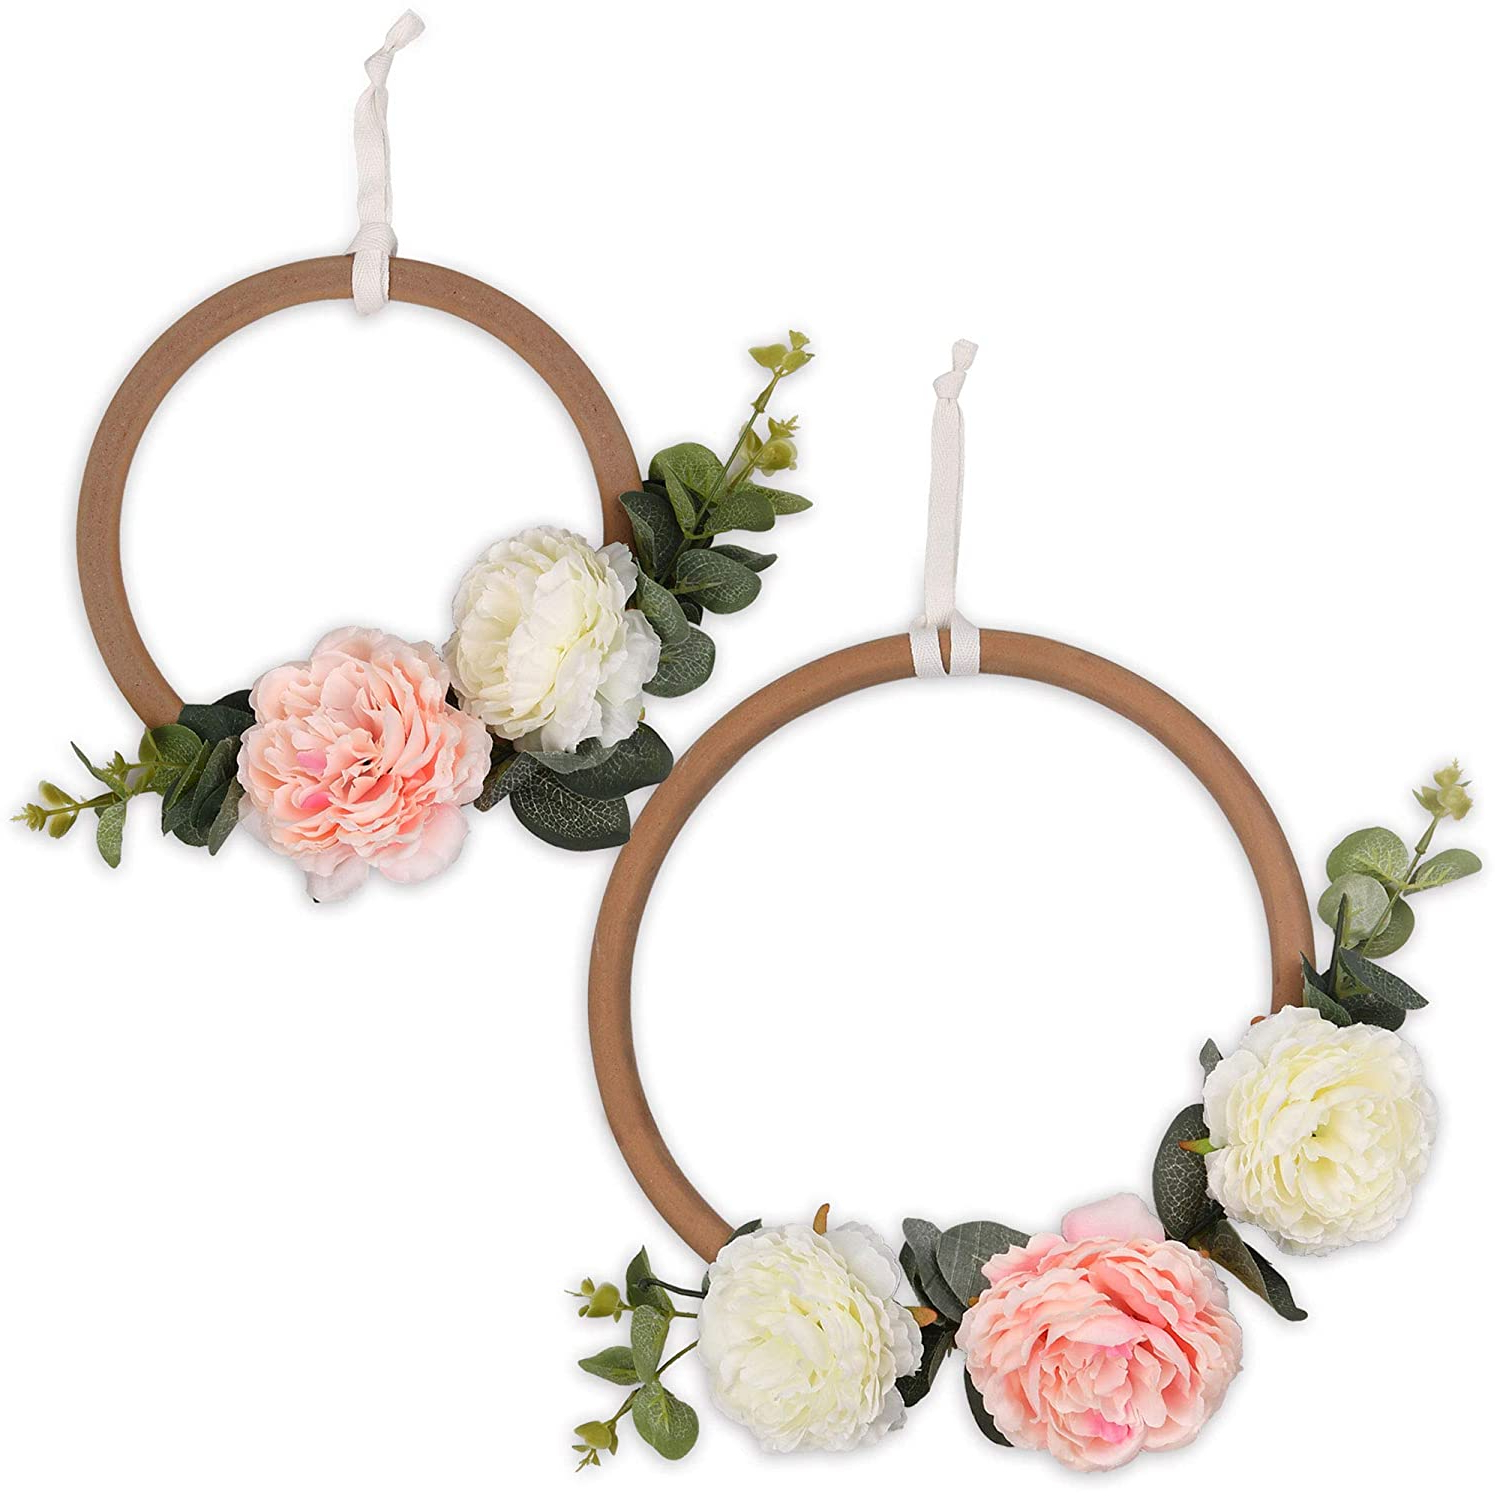 Most Recently Released Pink And White Floral Wooden Ring Nursery Wall Decor – Farmhouse Collection The Peanut Shell Within Rings Wall Décor (View 11 of 20)